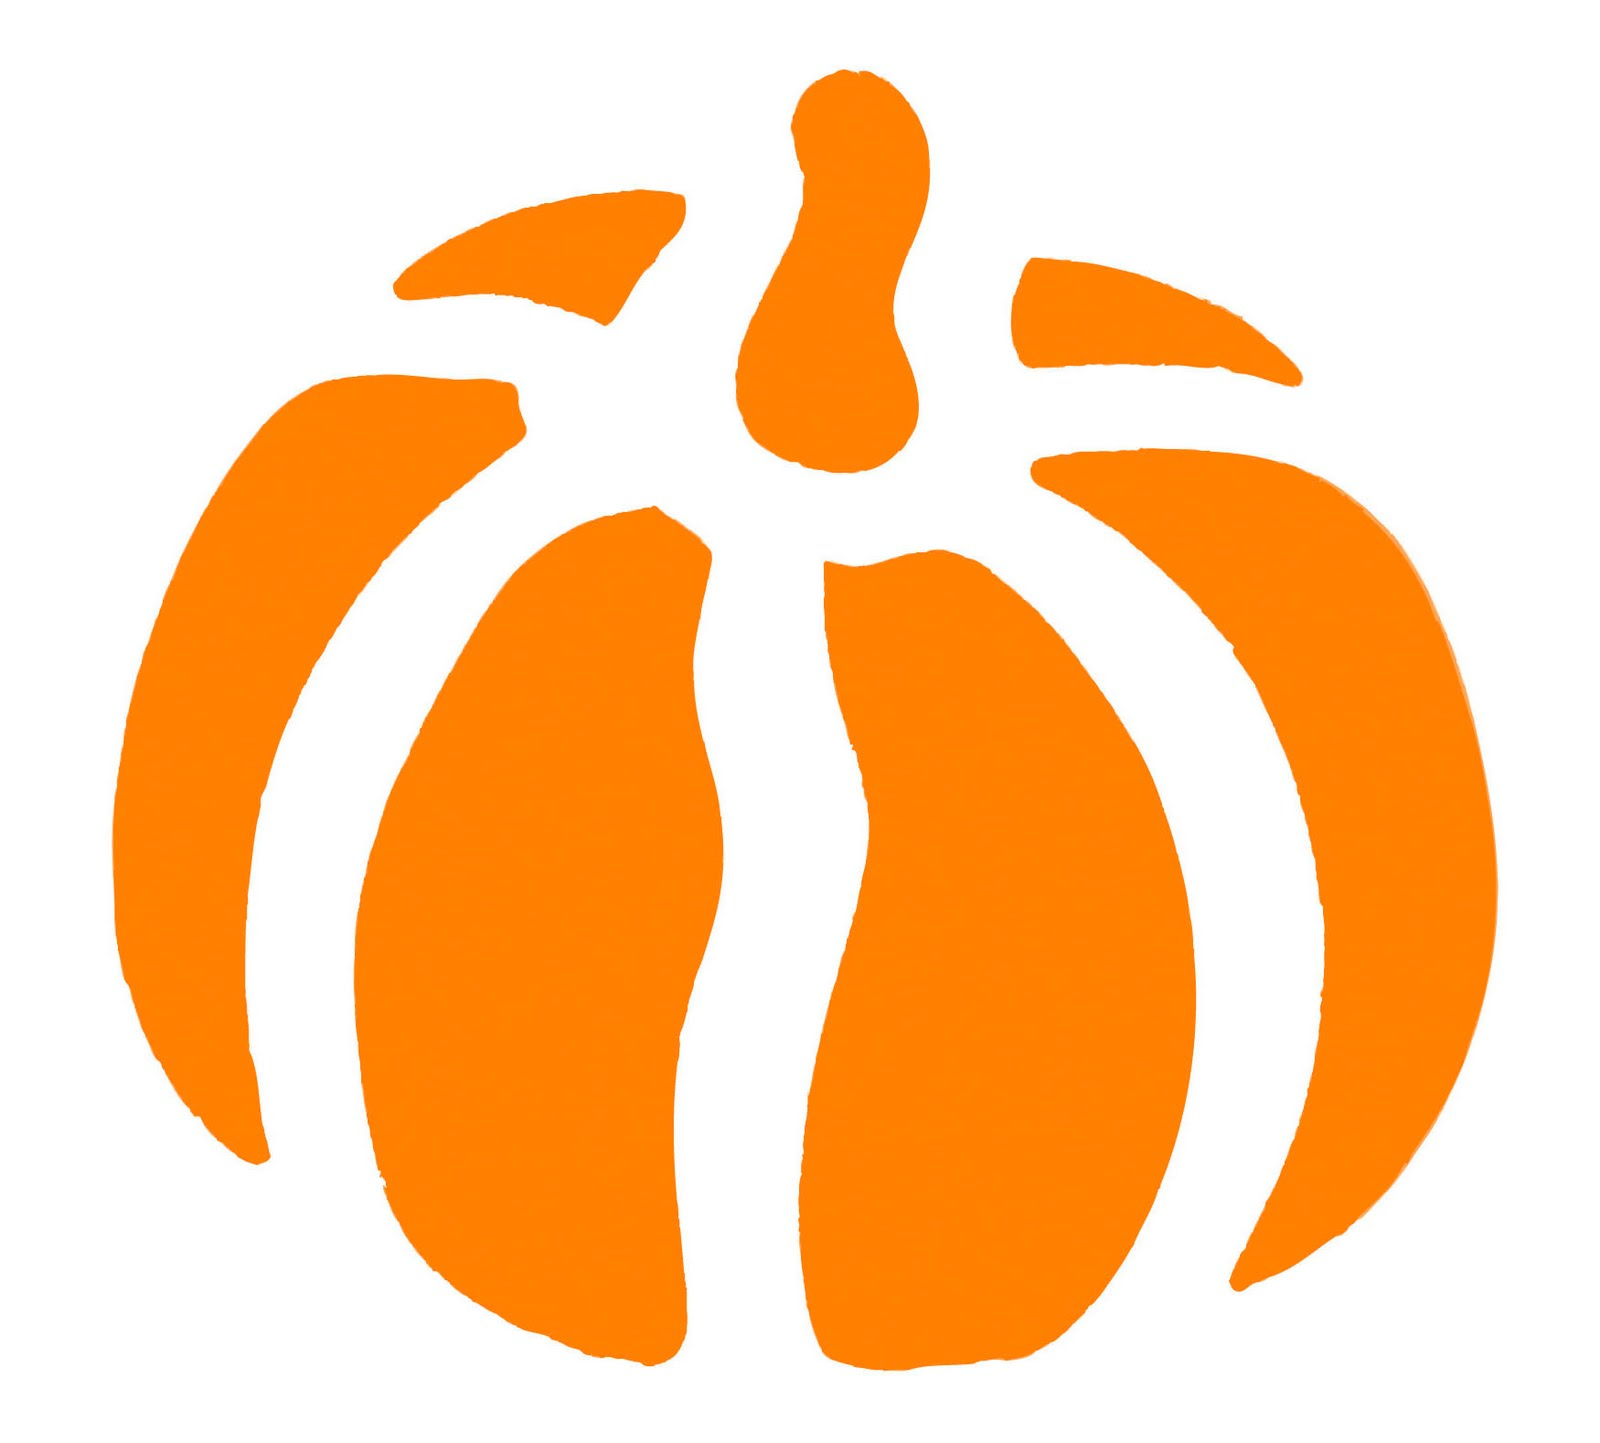 Scary Pumpkin Clipart at GetDrawings.com | Free for personal use ...